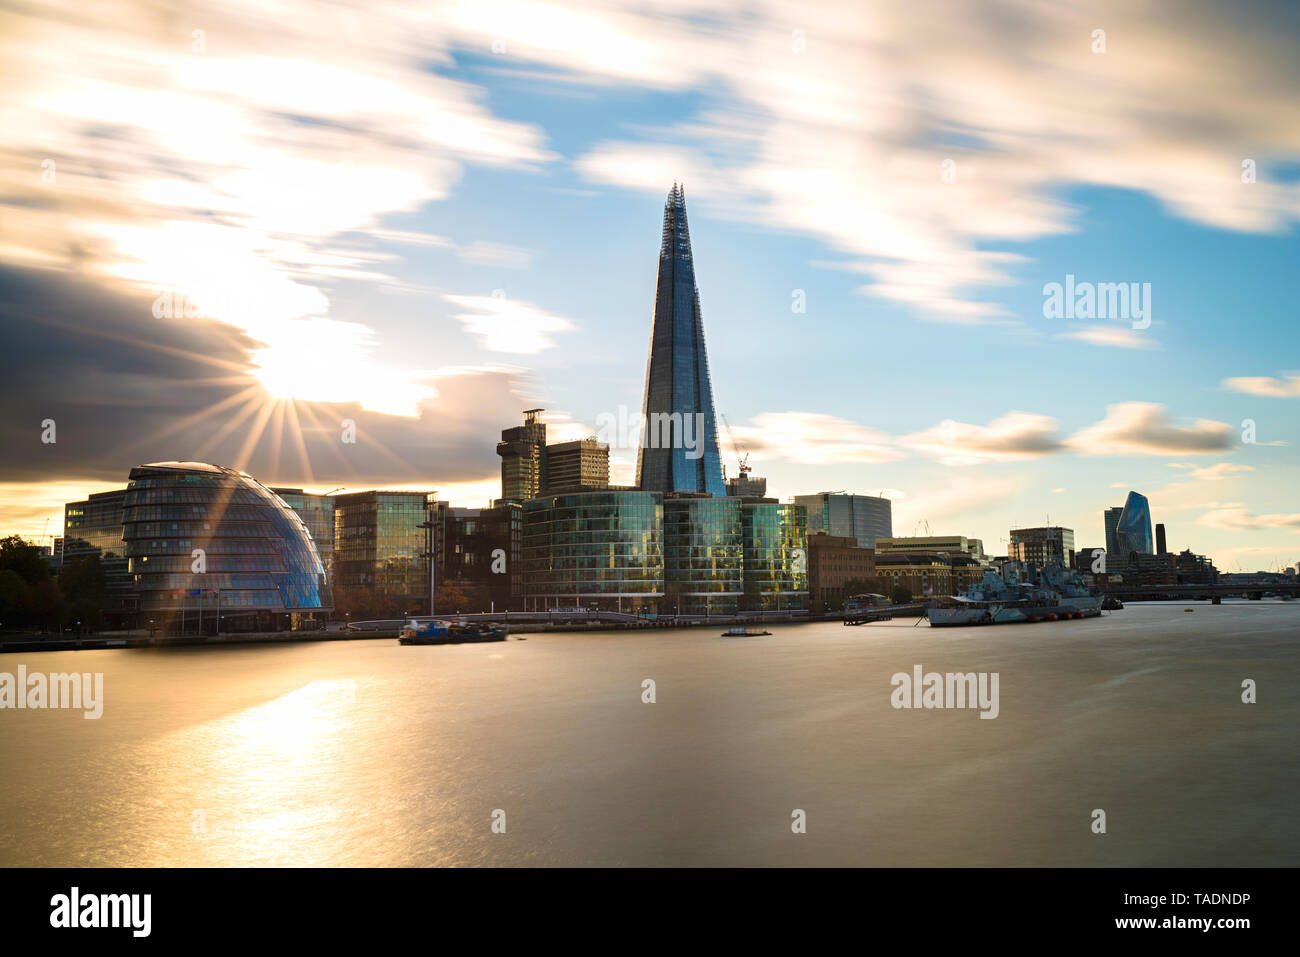 UK, London, River Thames, skyline with City Hall and The Shard at sunset Stock Photo